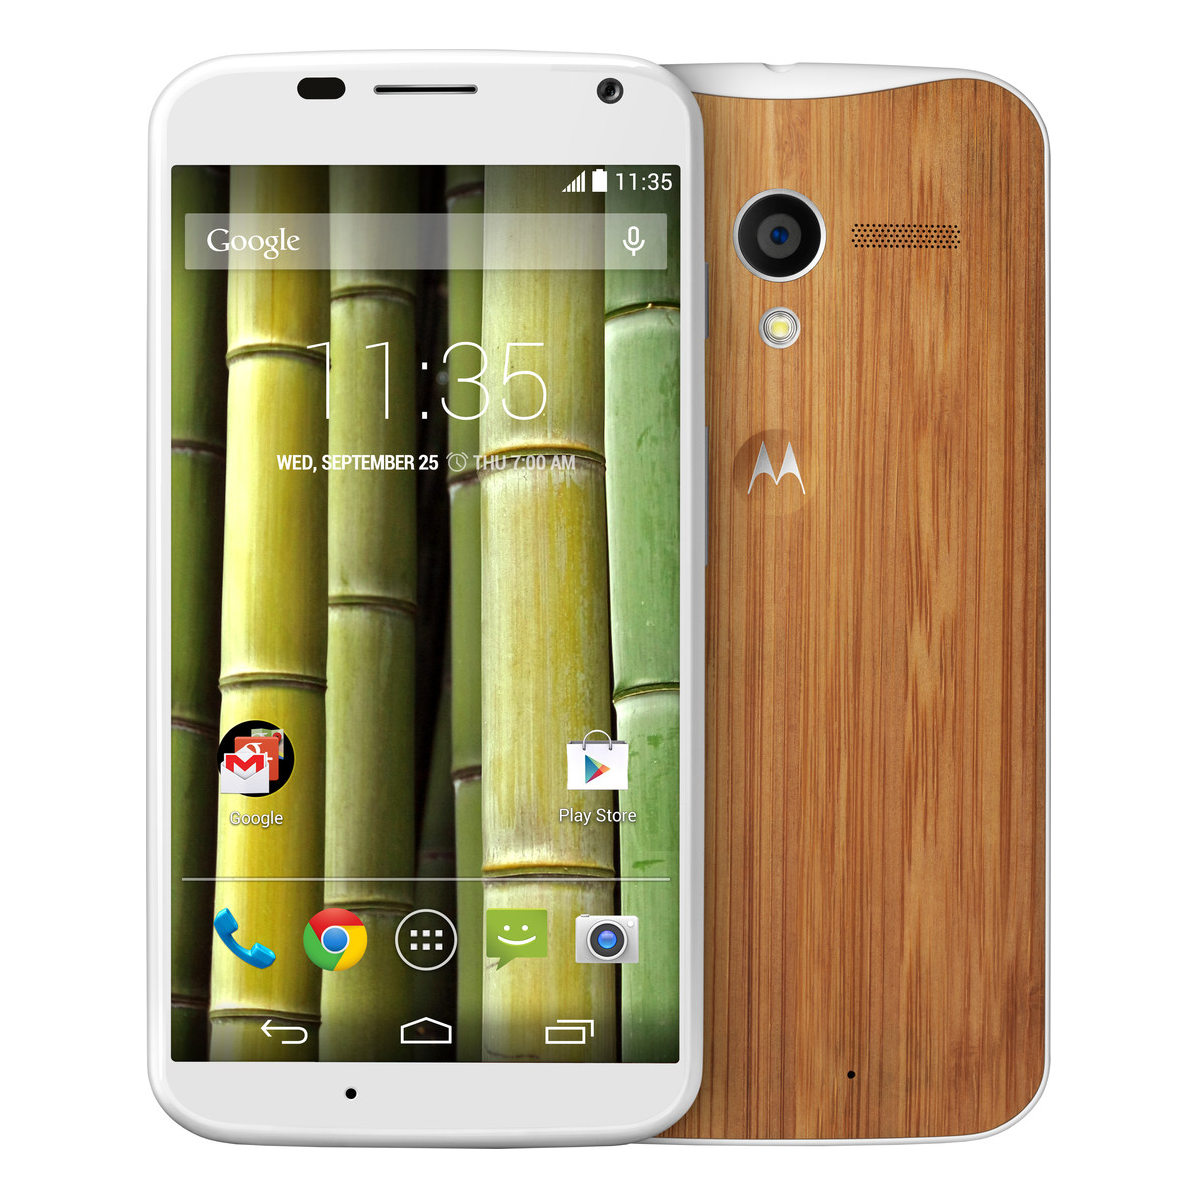 Motorola Moto X 32GB 4G LTE Android Smart Phone Unlocked GSM in White with Bamboo Back Panel